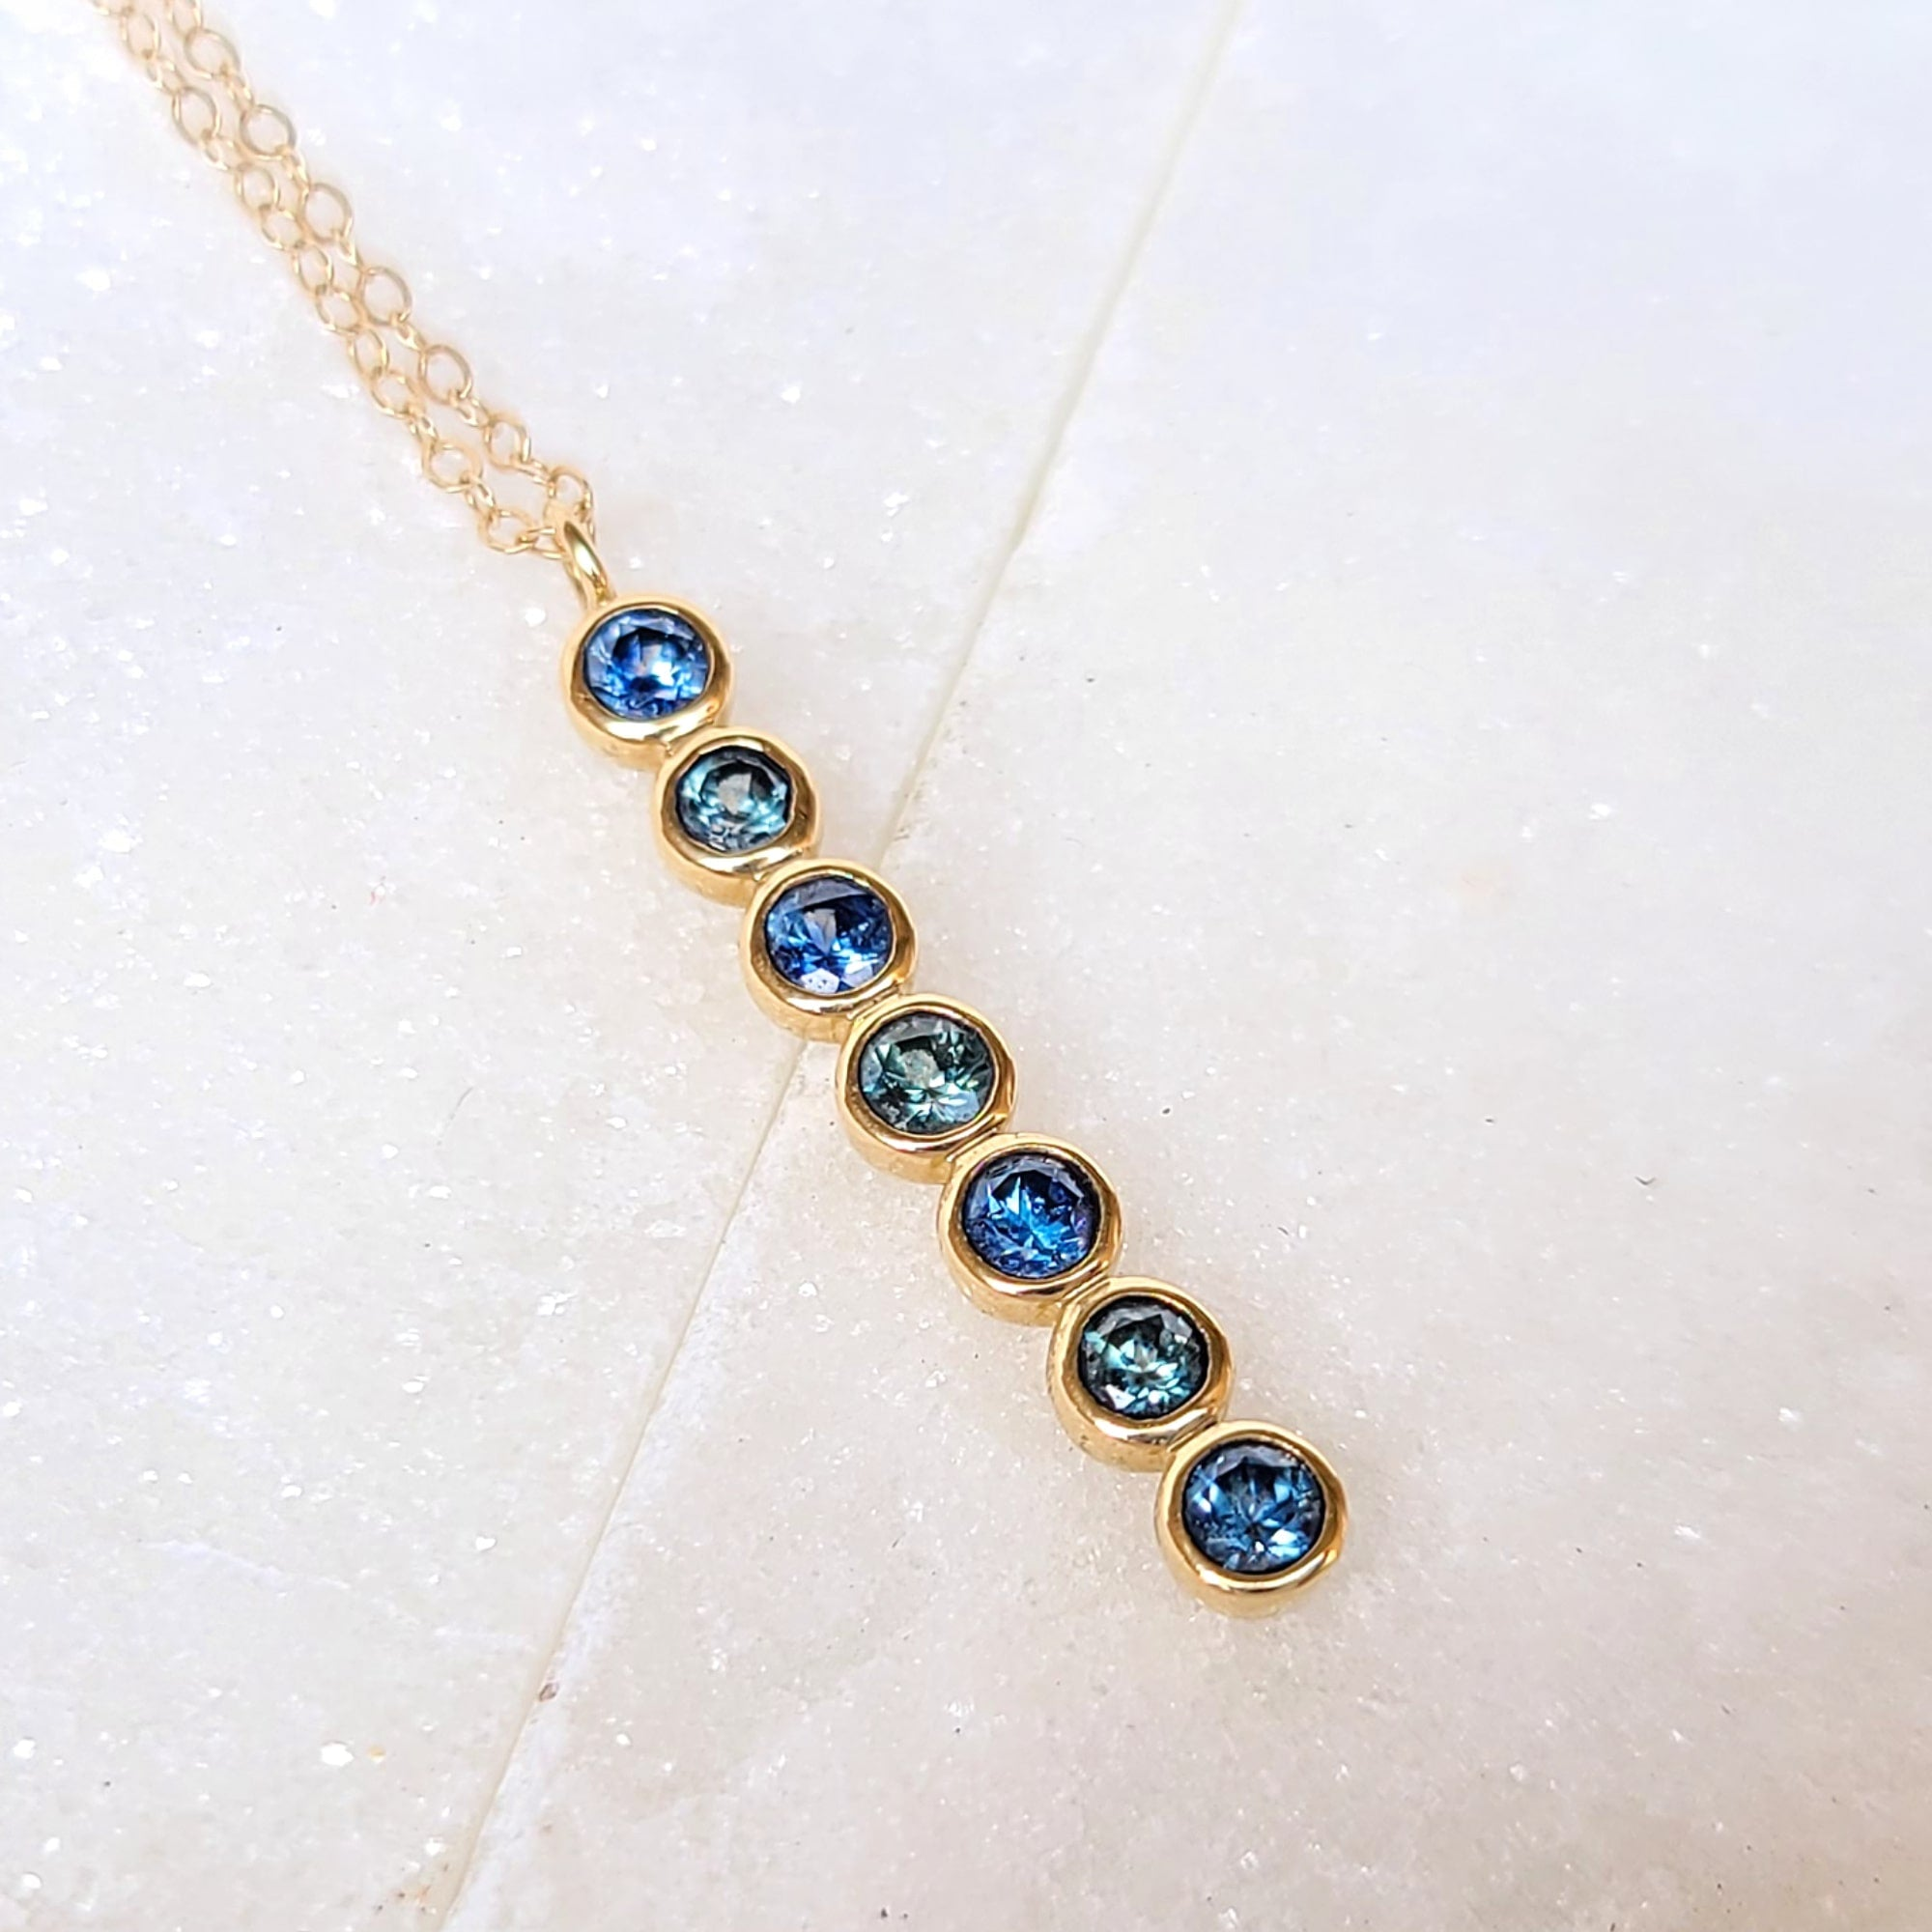 Image of 14K Gold Hues of Blue Sapphire Necklace